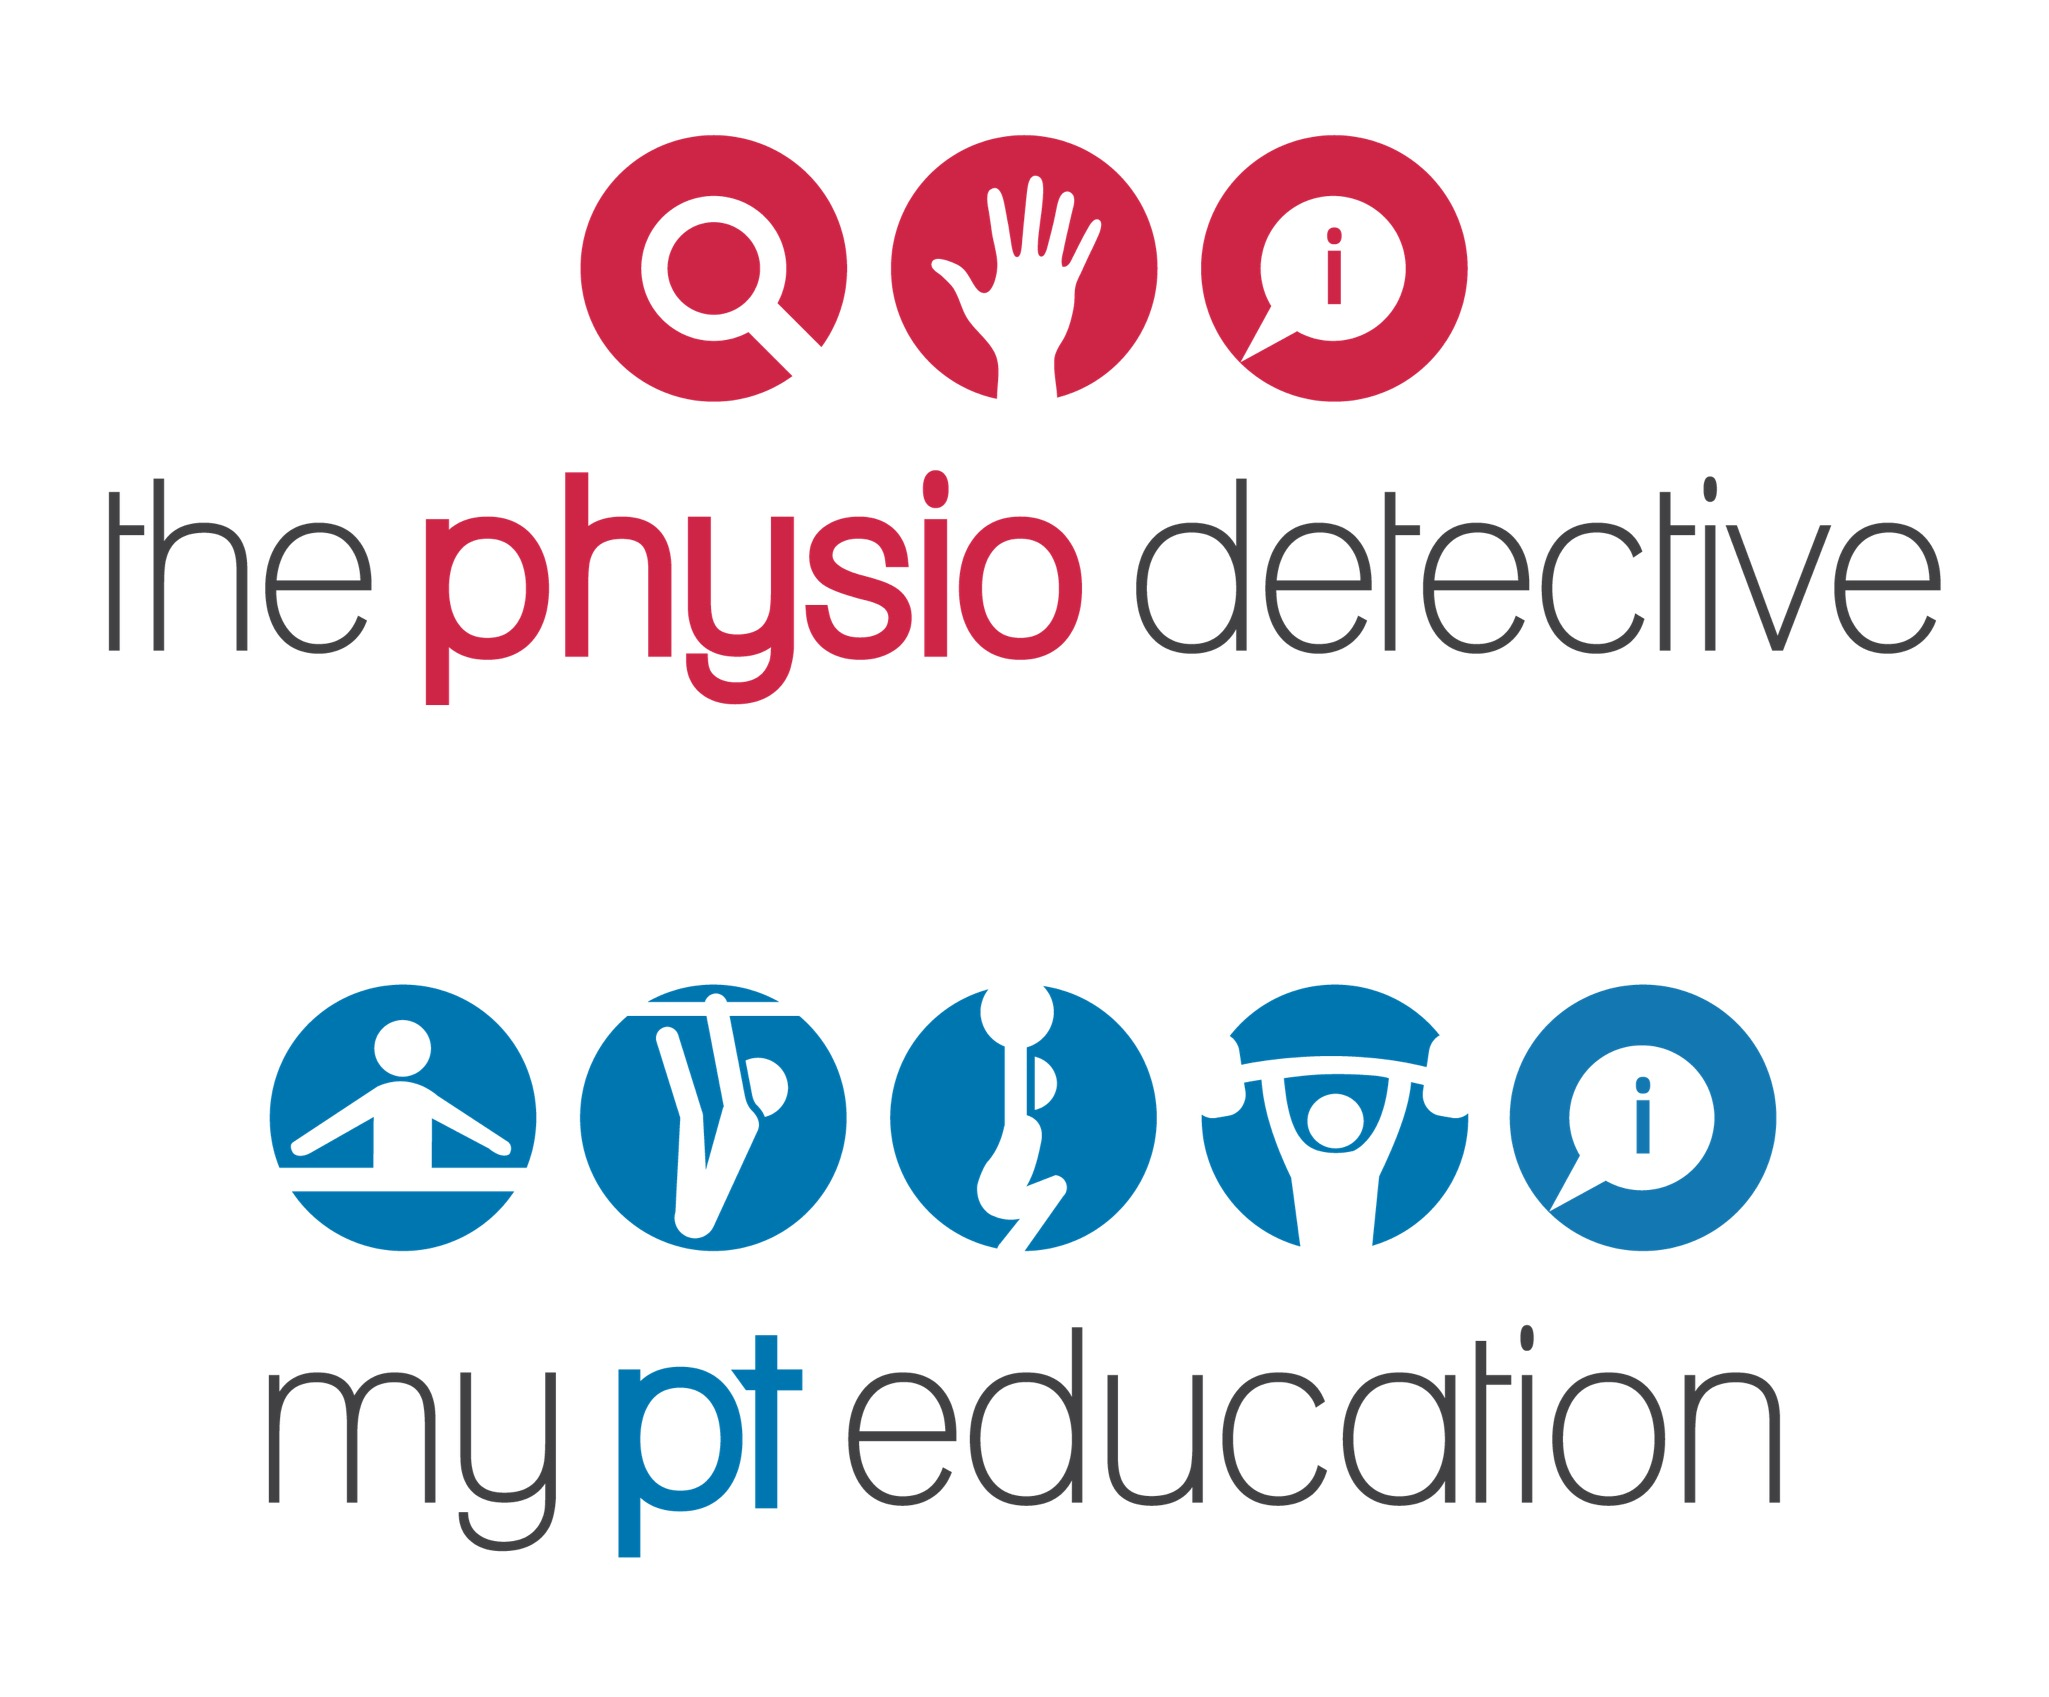 The Physio Detective / My PT Education